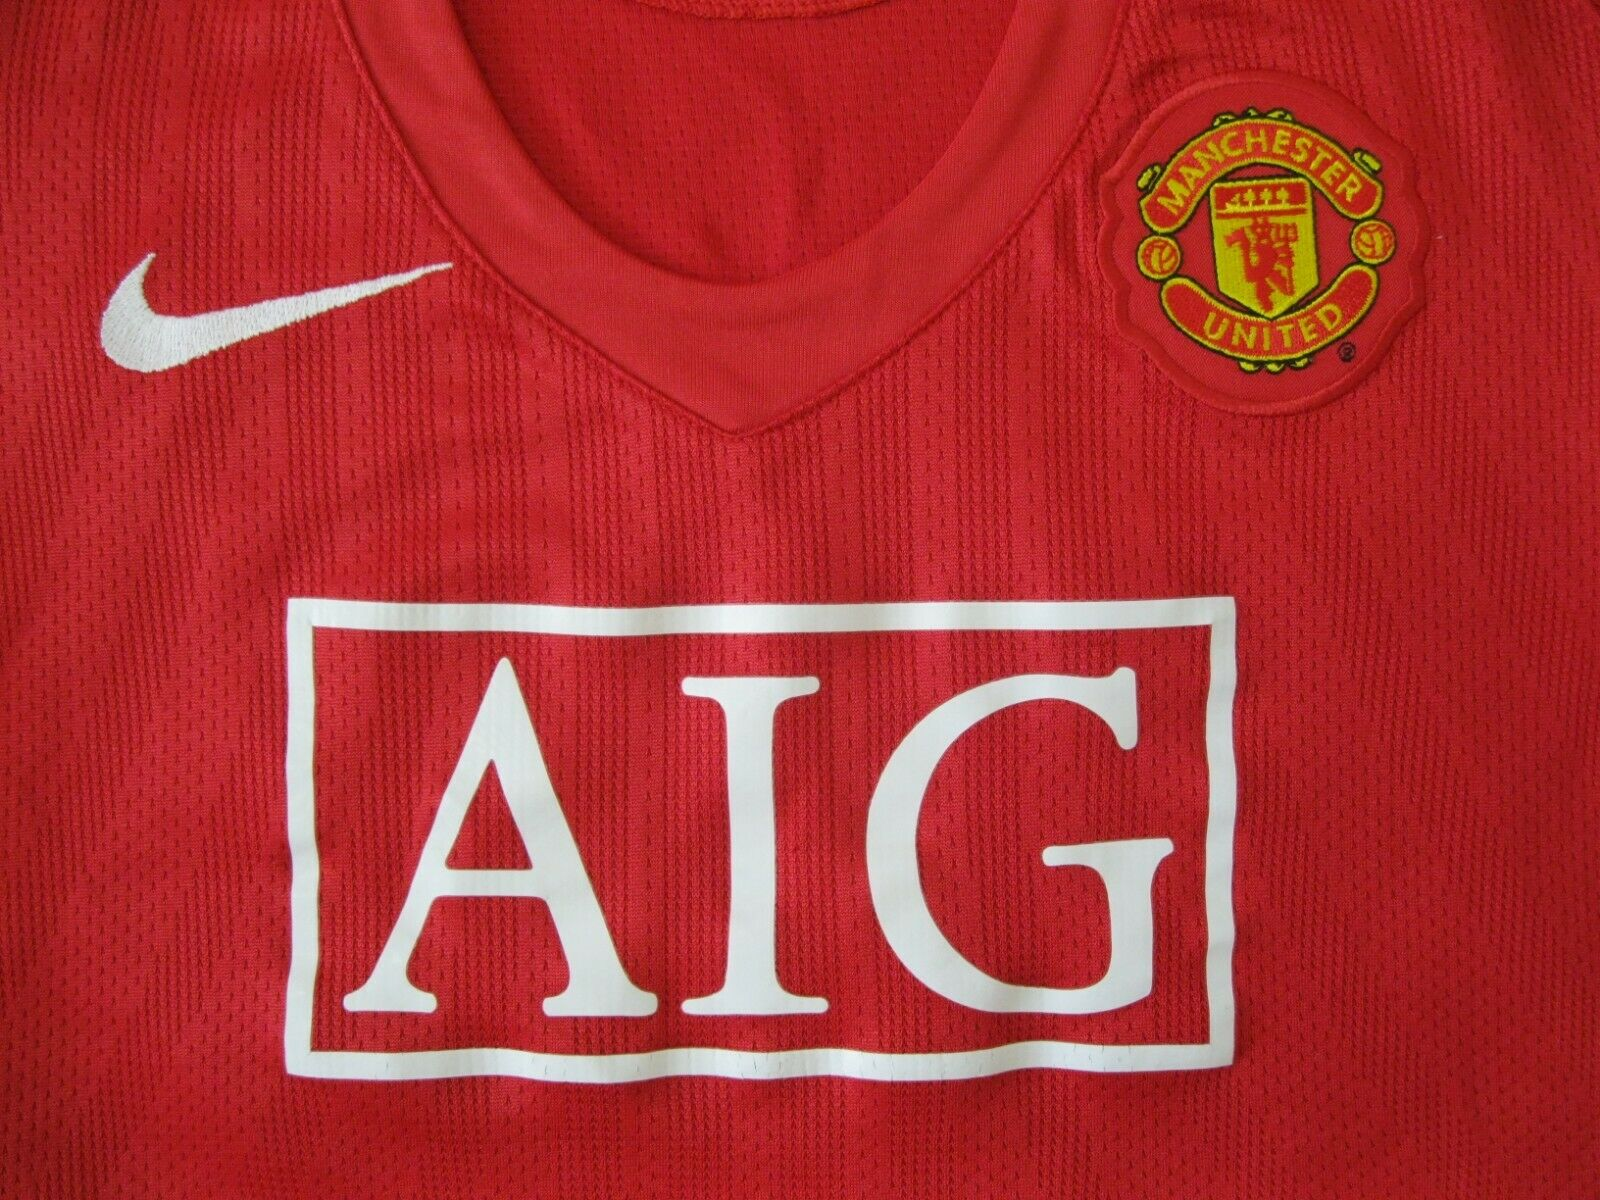 Ladies Manchester United 2007/2008/2009 #08 Home Size M Nike 237944-666 jersey